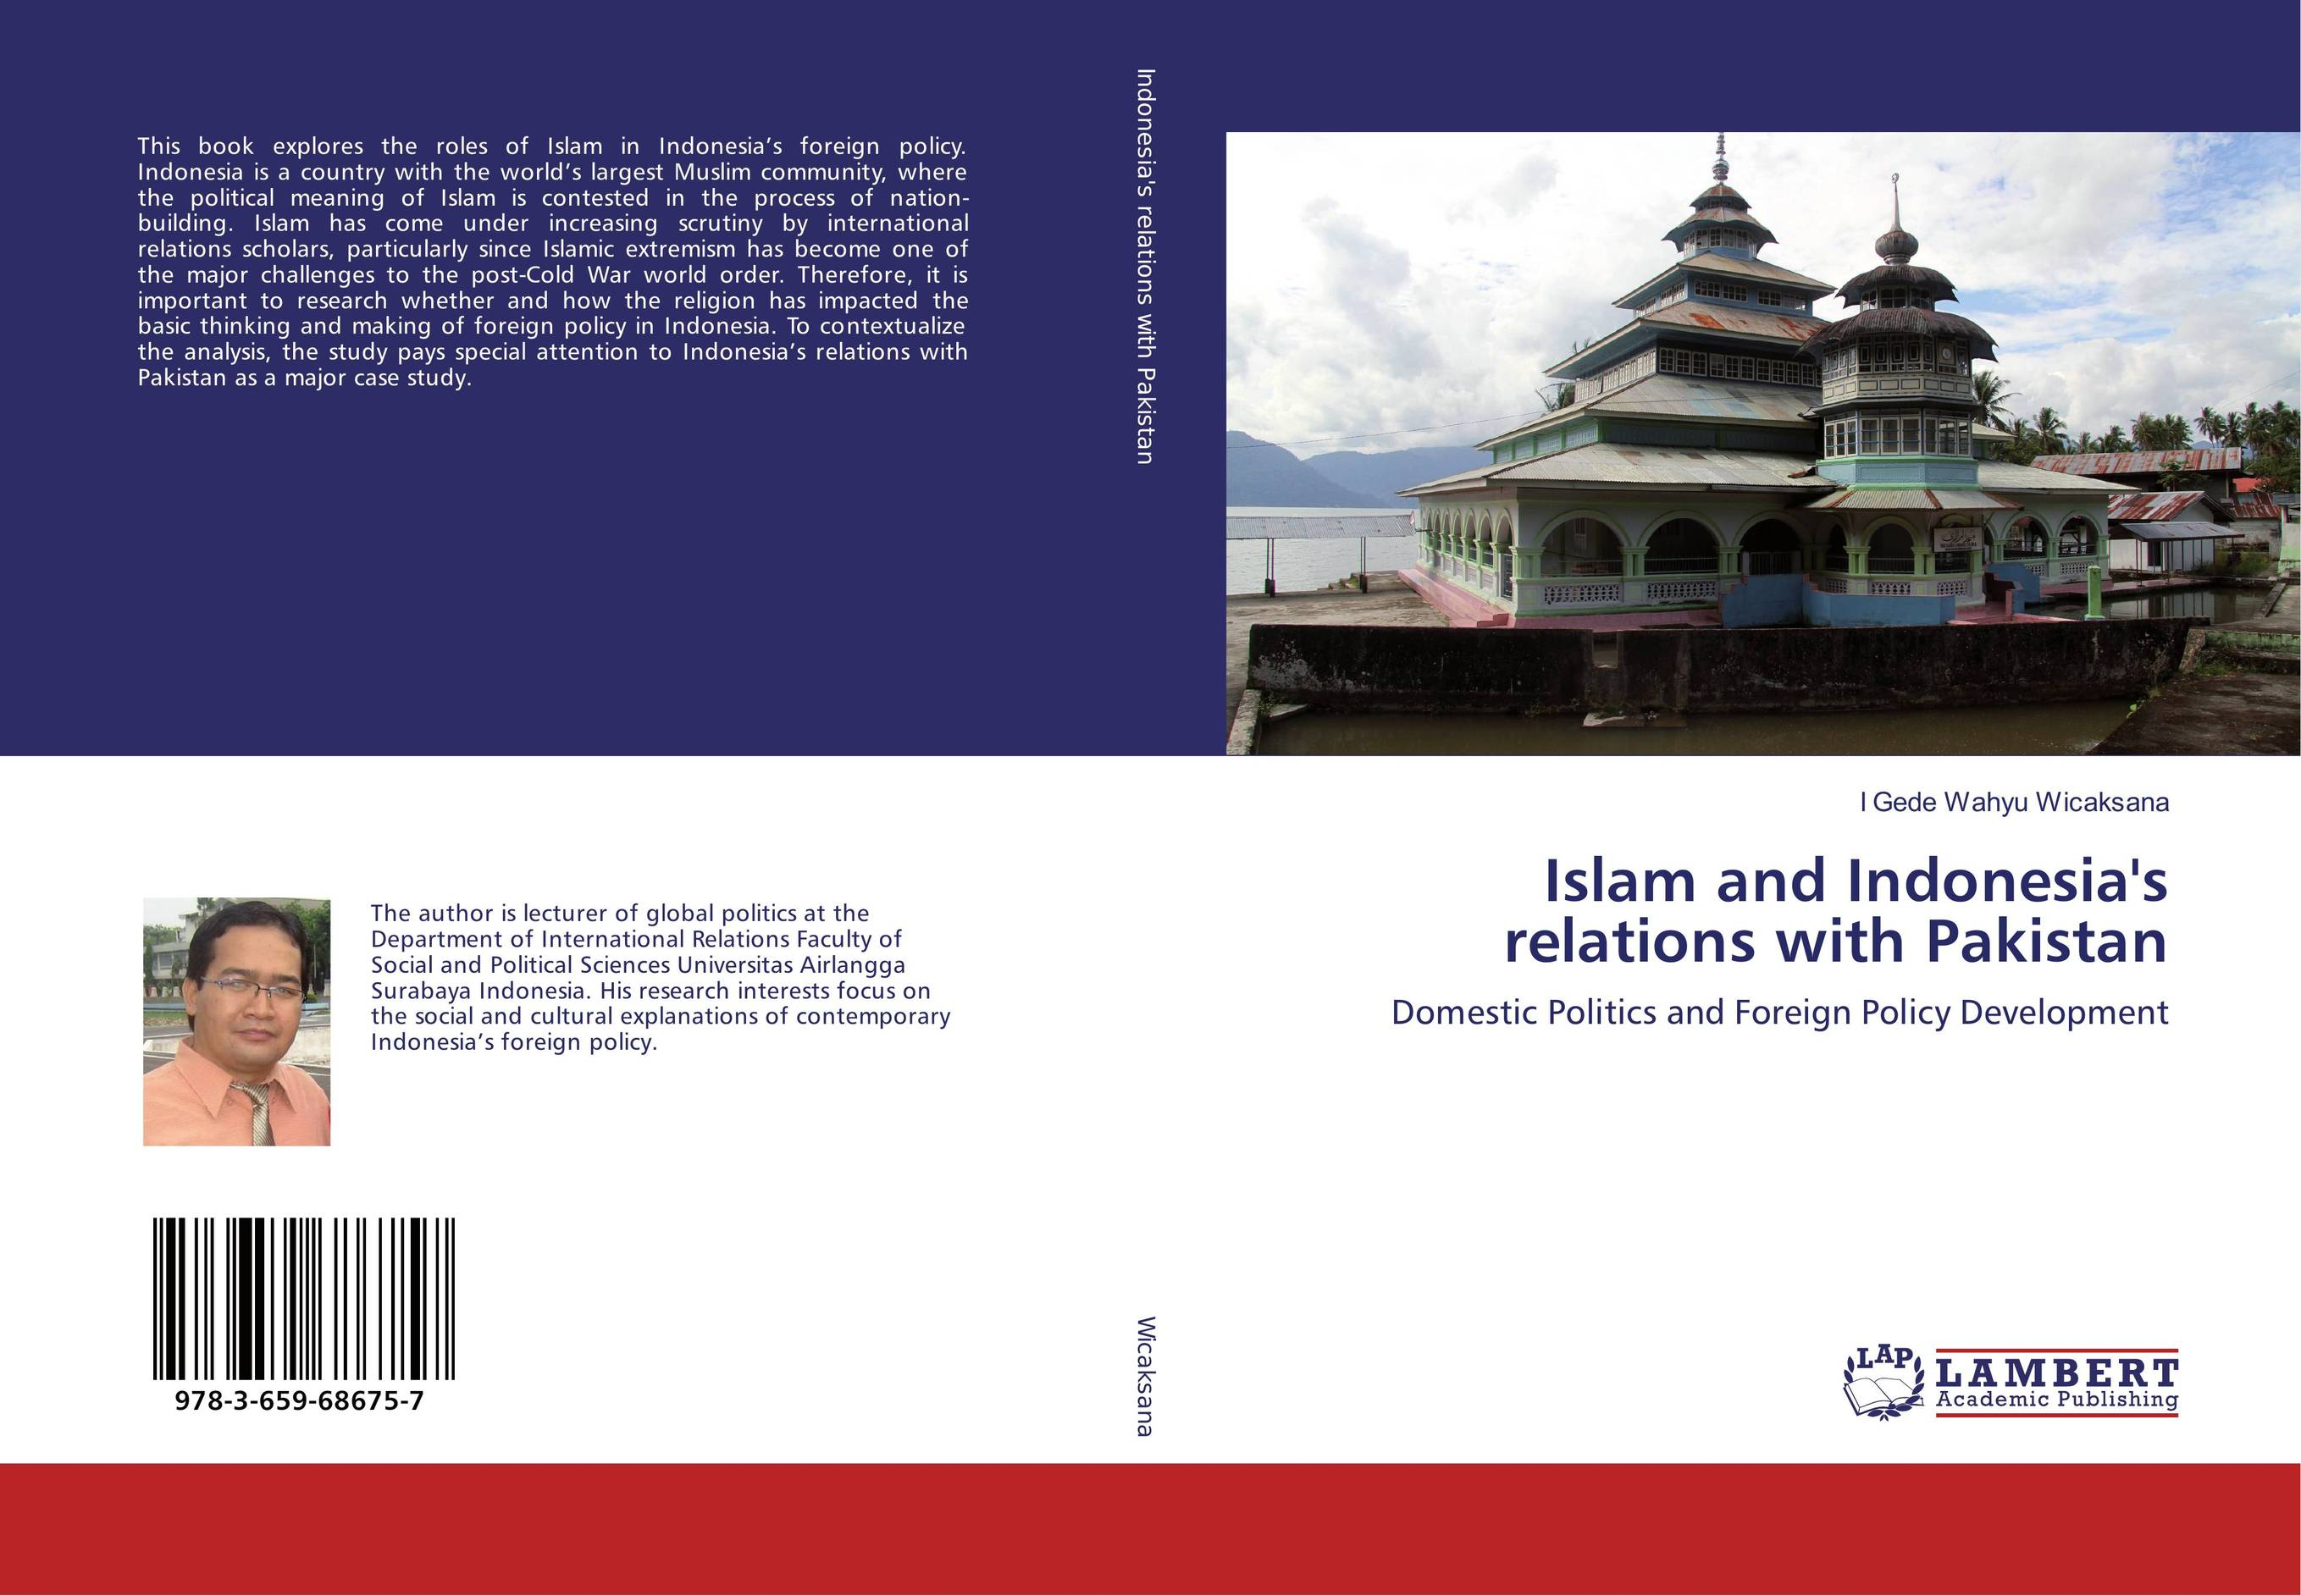 Islam and Indonesia's relations with Pakistan отвертка шлицевая npi crmo sl 3 0 x 60 мм